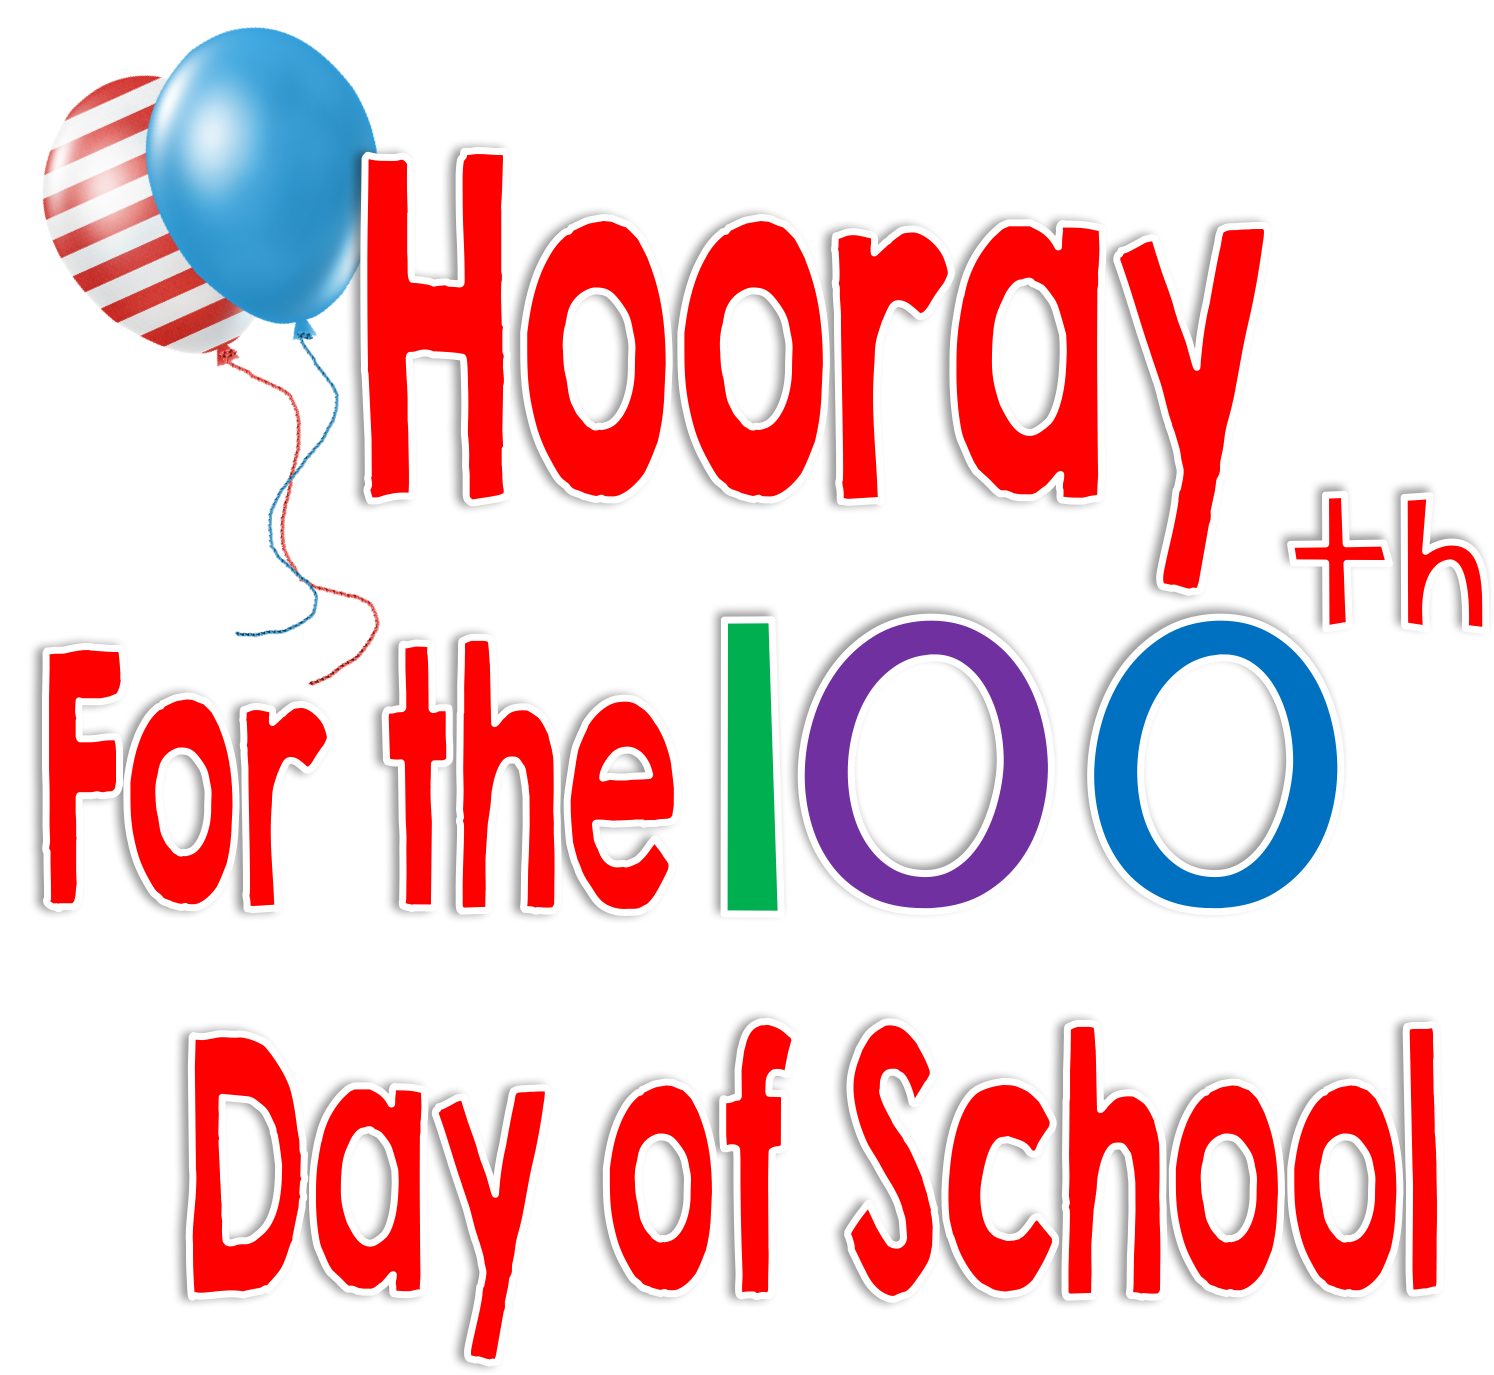 Half day of school clipart vector stock Time 4 Kindergarten: 100th Day of School, Hooray!!! vector stock